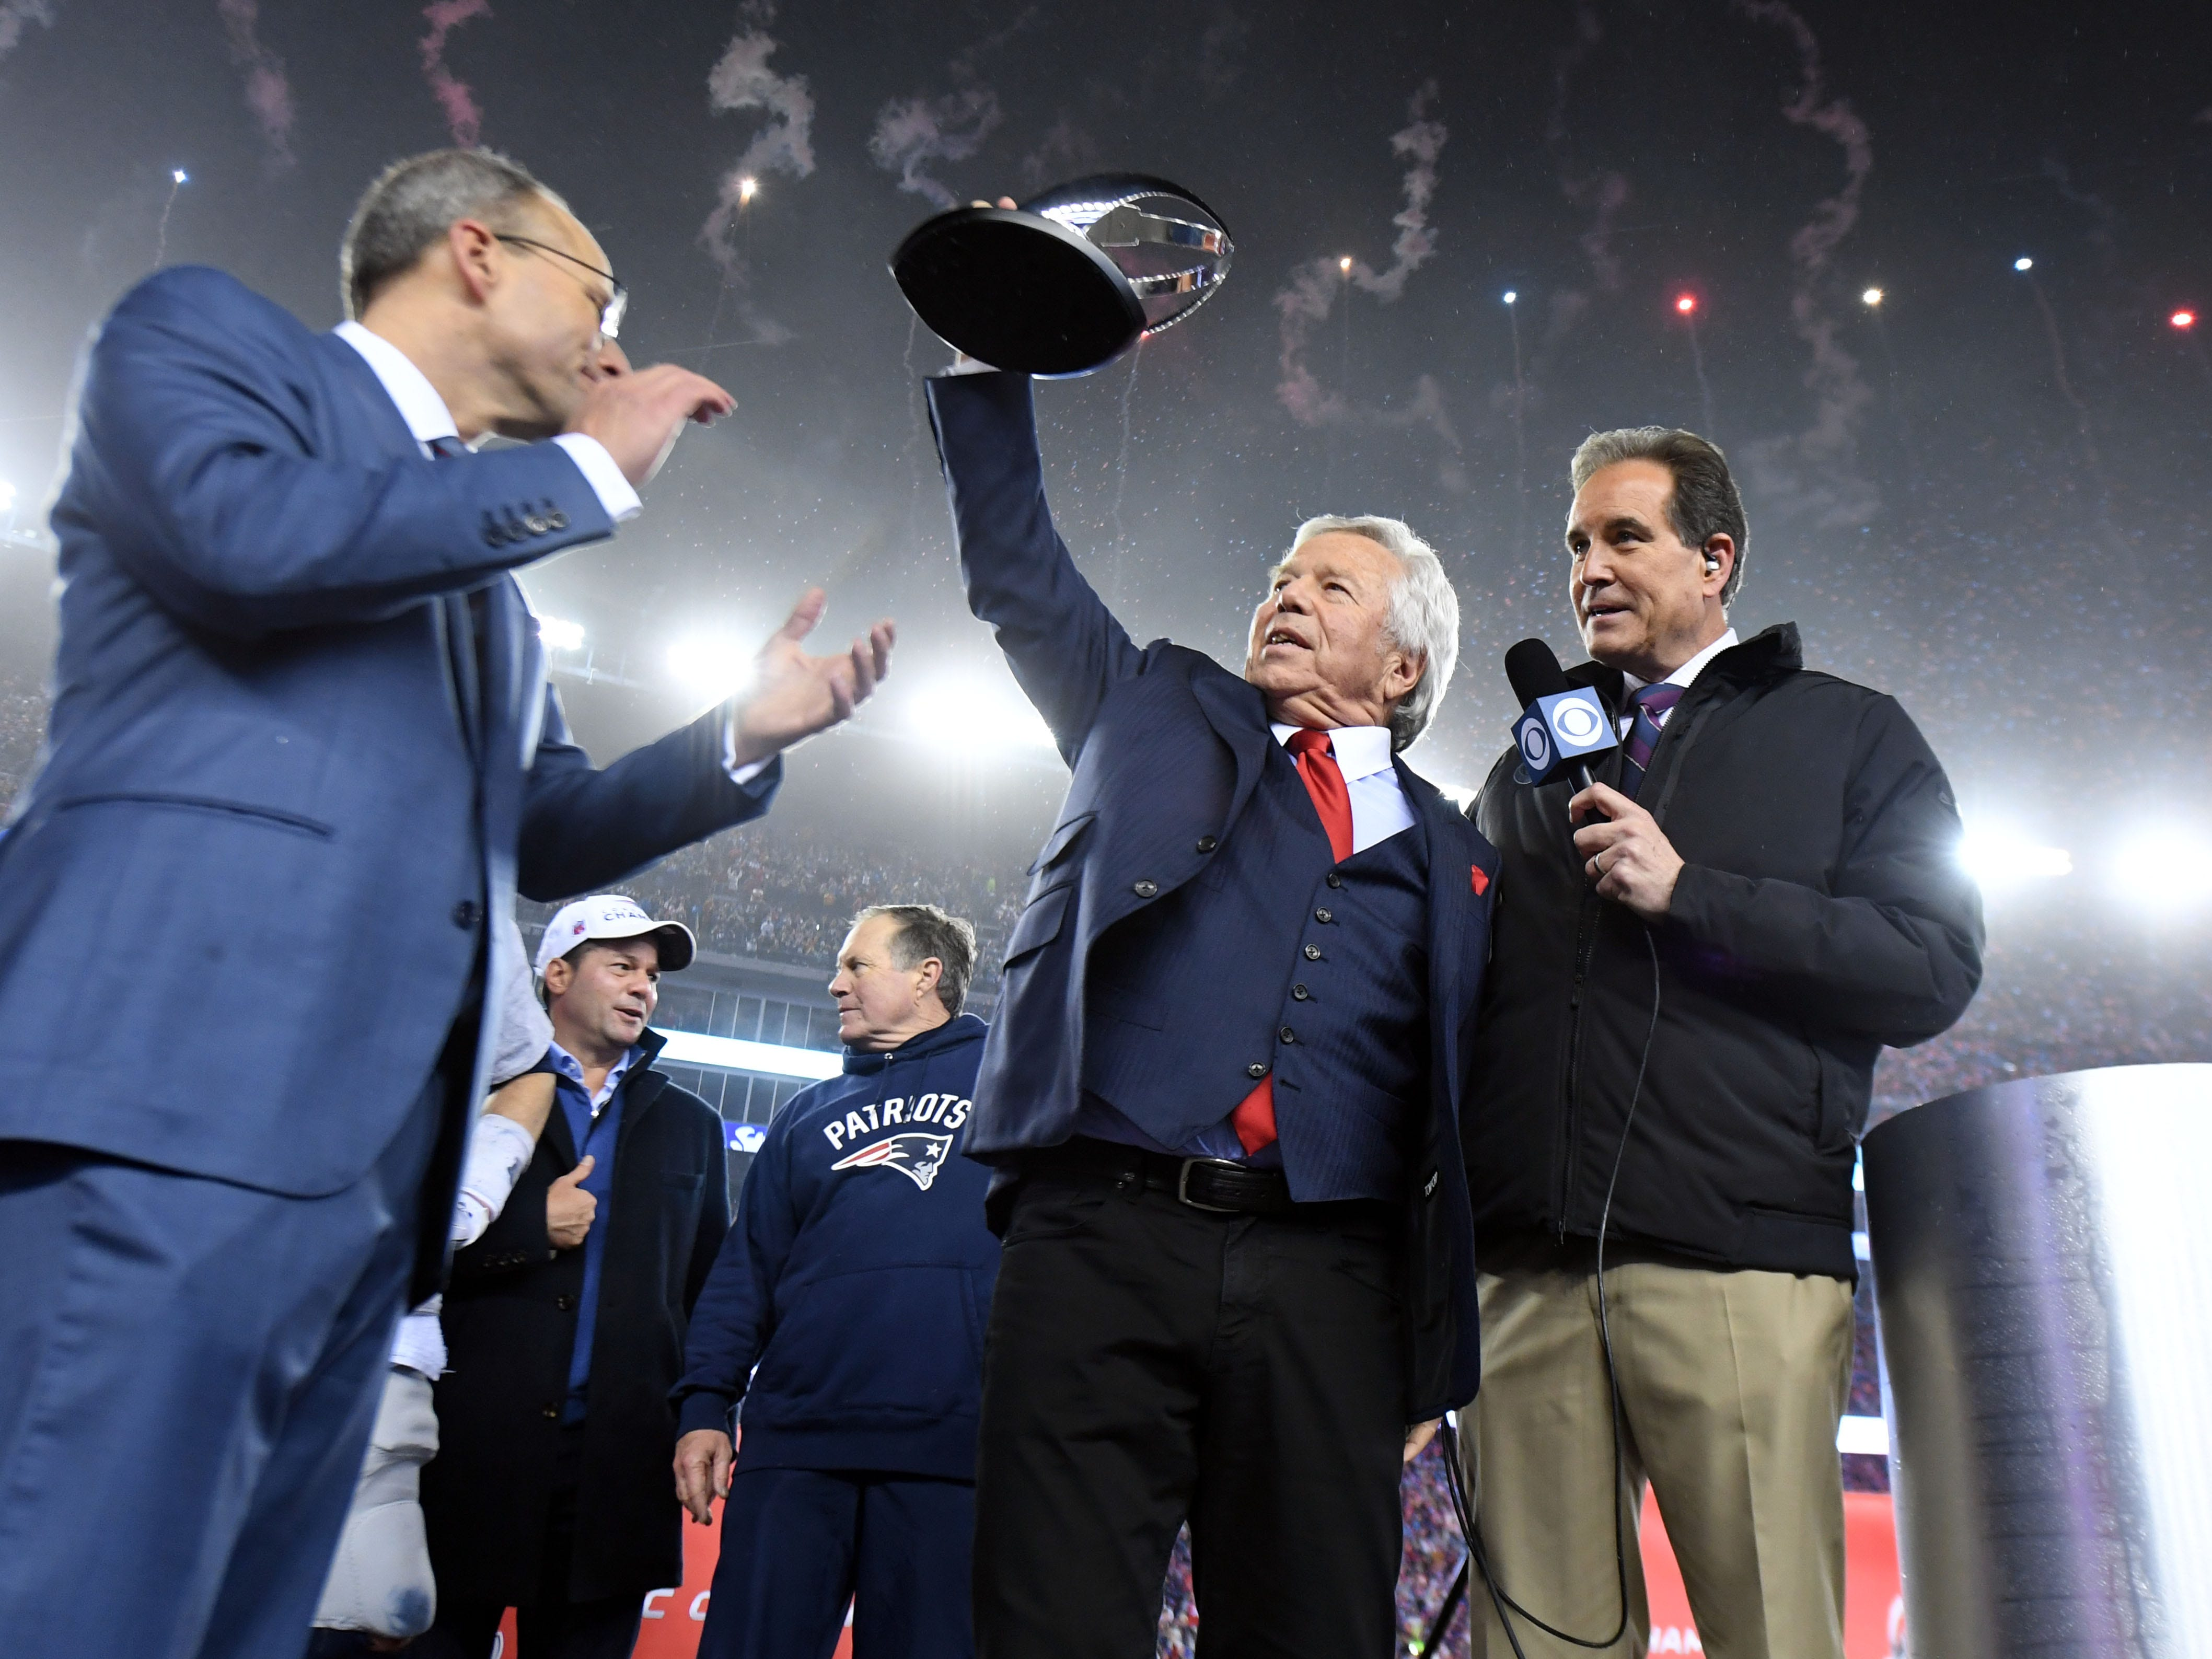 Kraft celebrates after beating the Pittsburgh Steelers in the 2017 AFC Championship Game at Gillette Stadium.